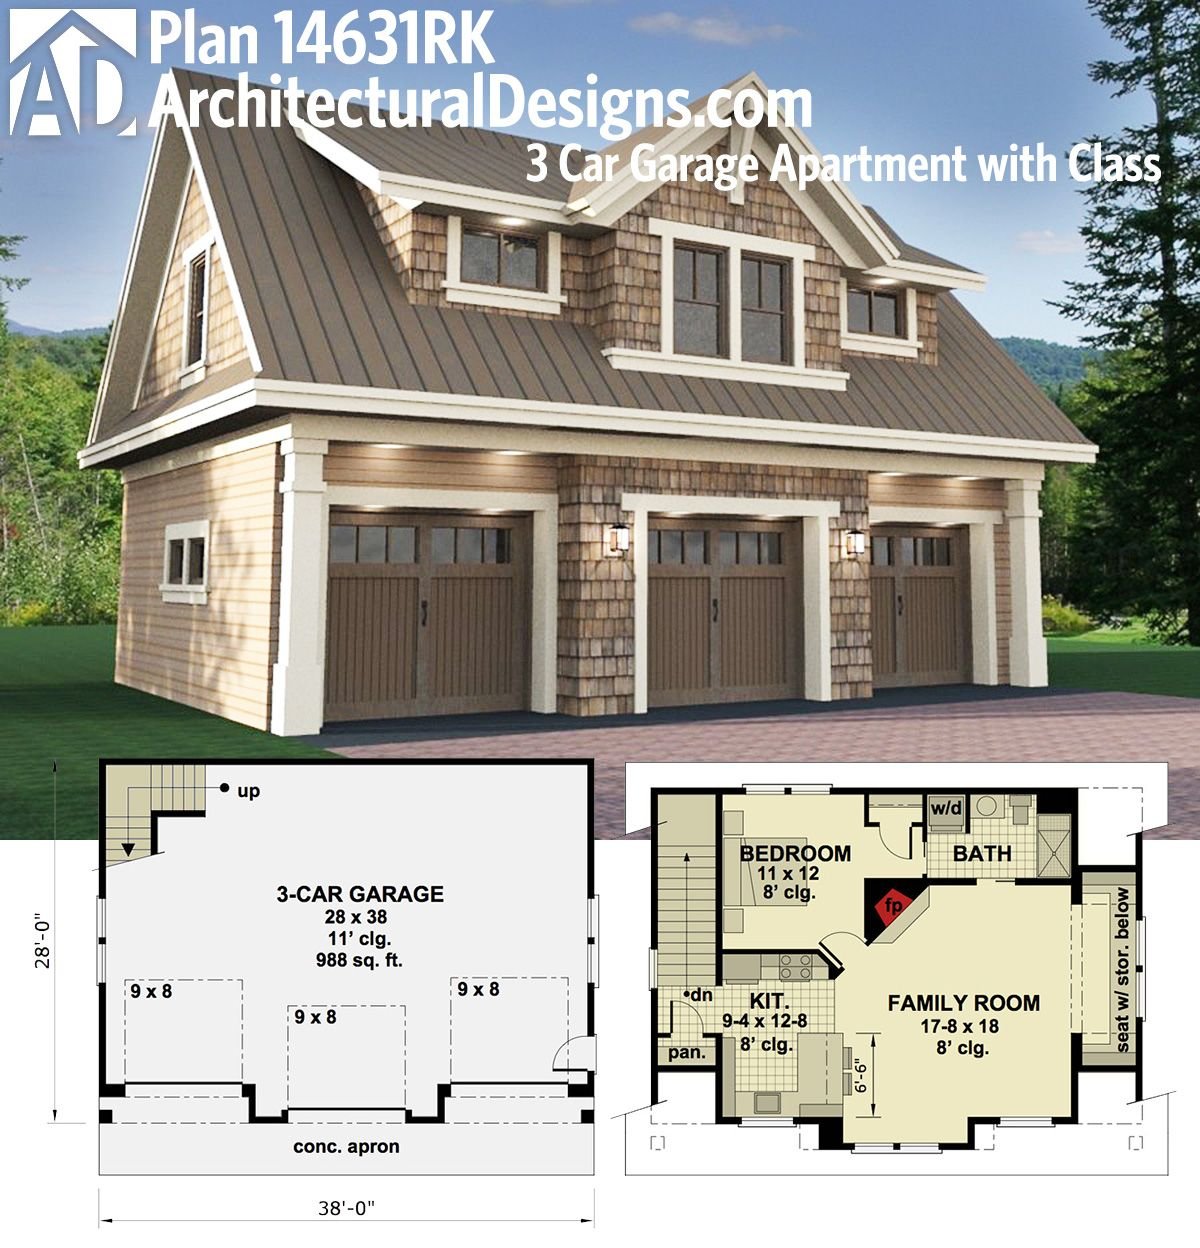 Architectural designs carriage house plan 14631rk gives for Garage apartment building plans